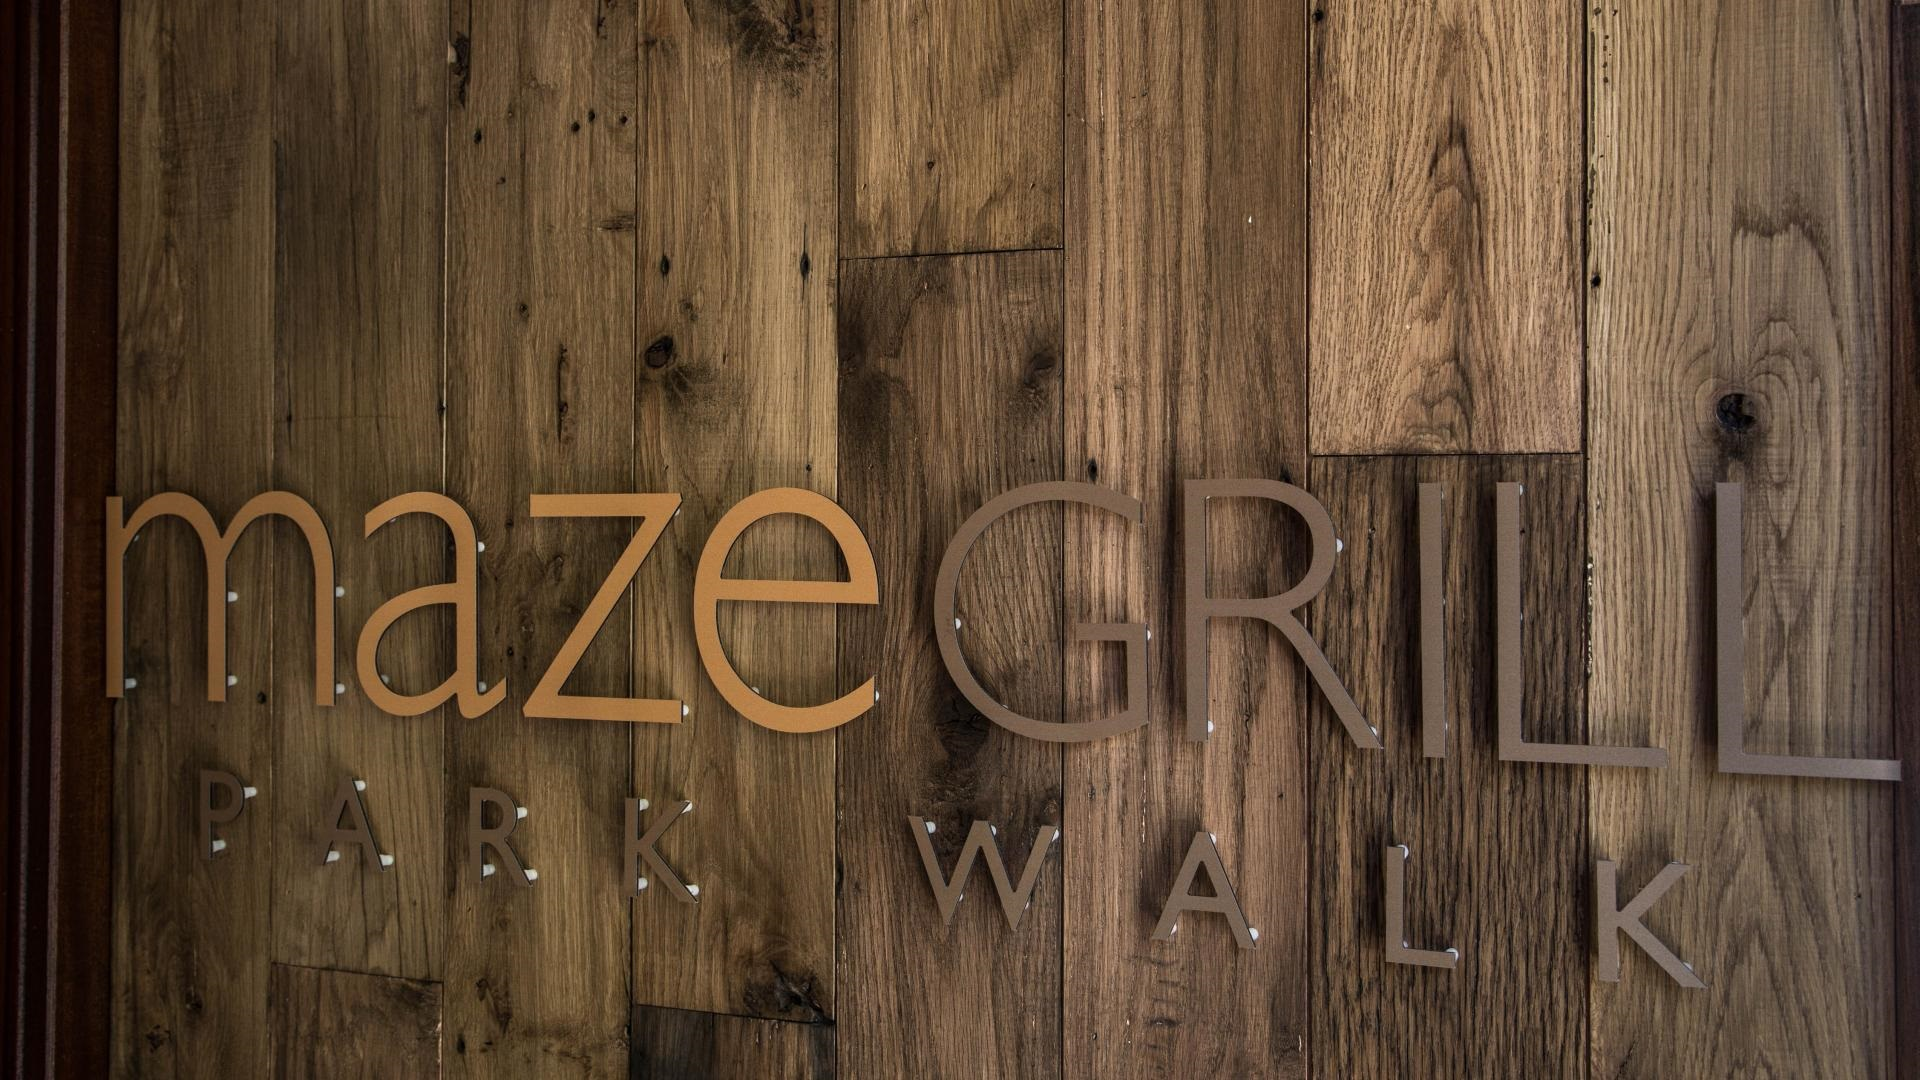 maze Grill 11 Park Walk - Gordon Ramsay Restaurants - London